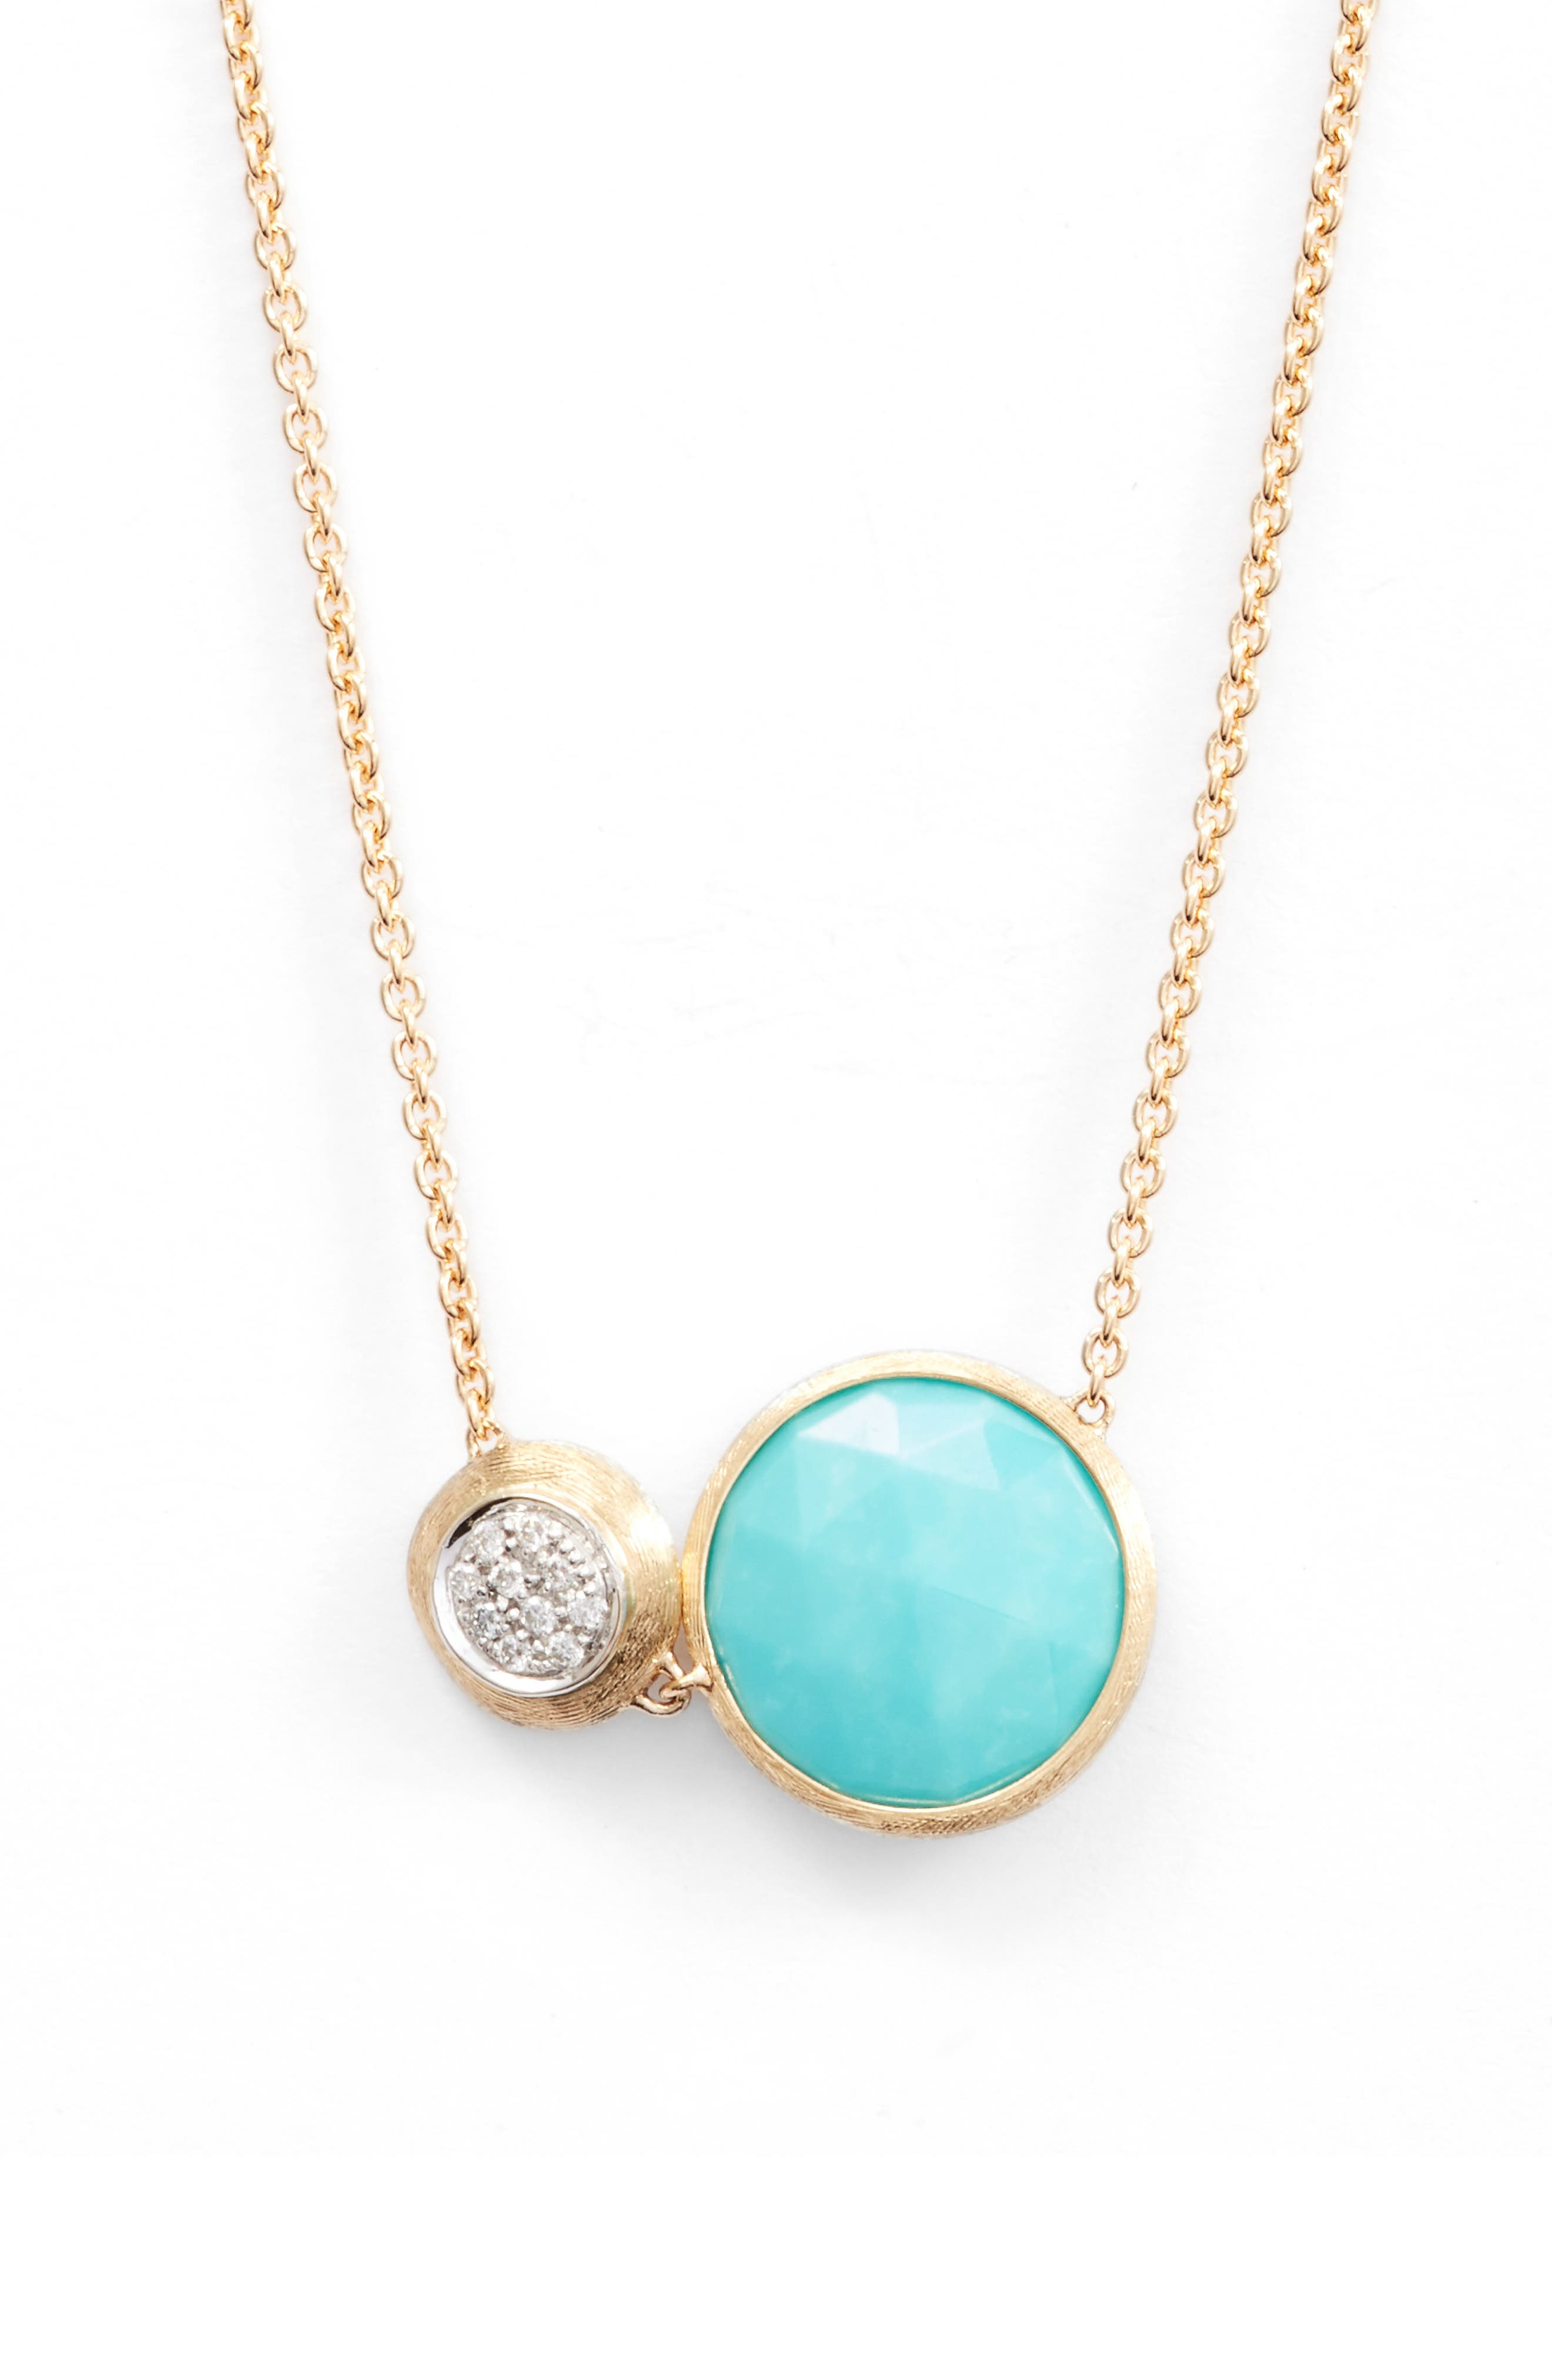 Jaipur Turquoise & Diamond Pendant Necklace,                         Main,                         color, Yellow Gold/ Turquoise